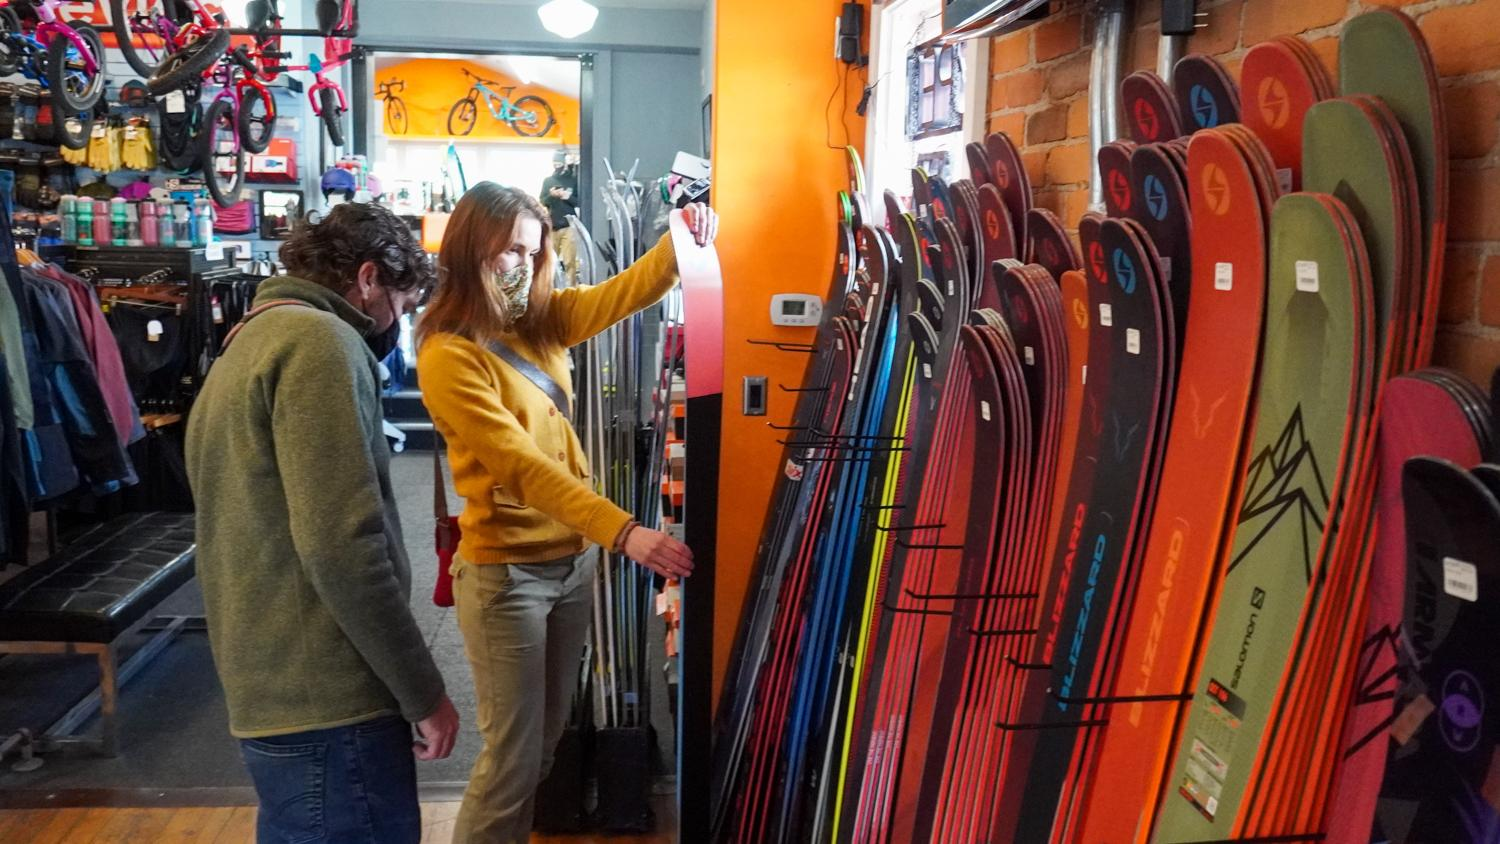 Shopping for skis at Great Northern Cycle & Ski